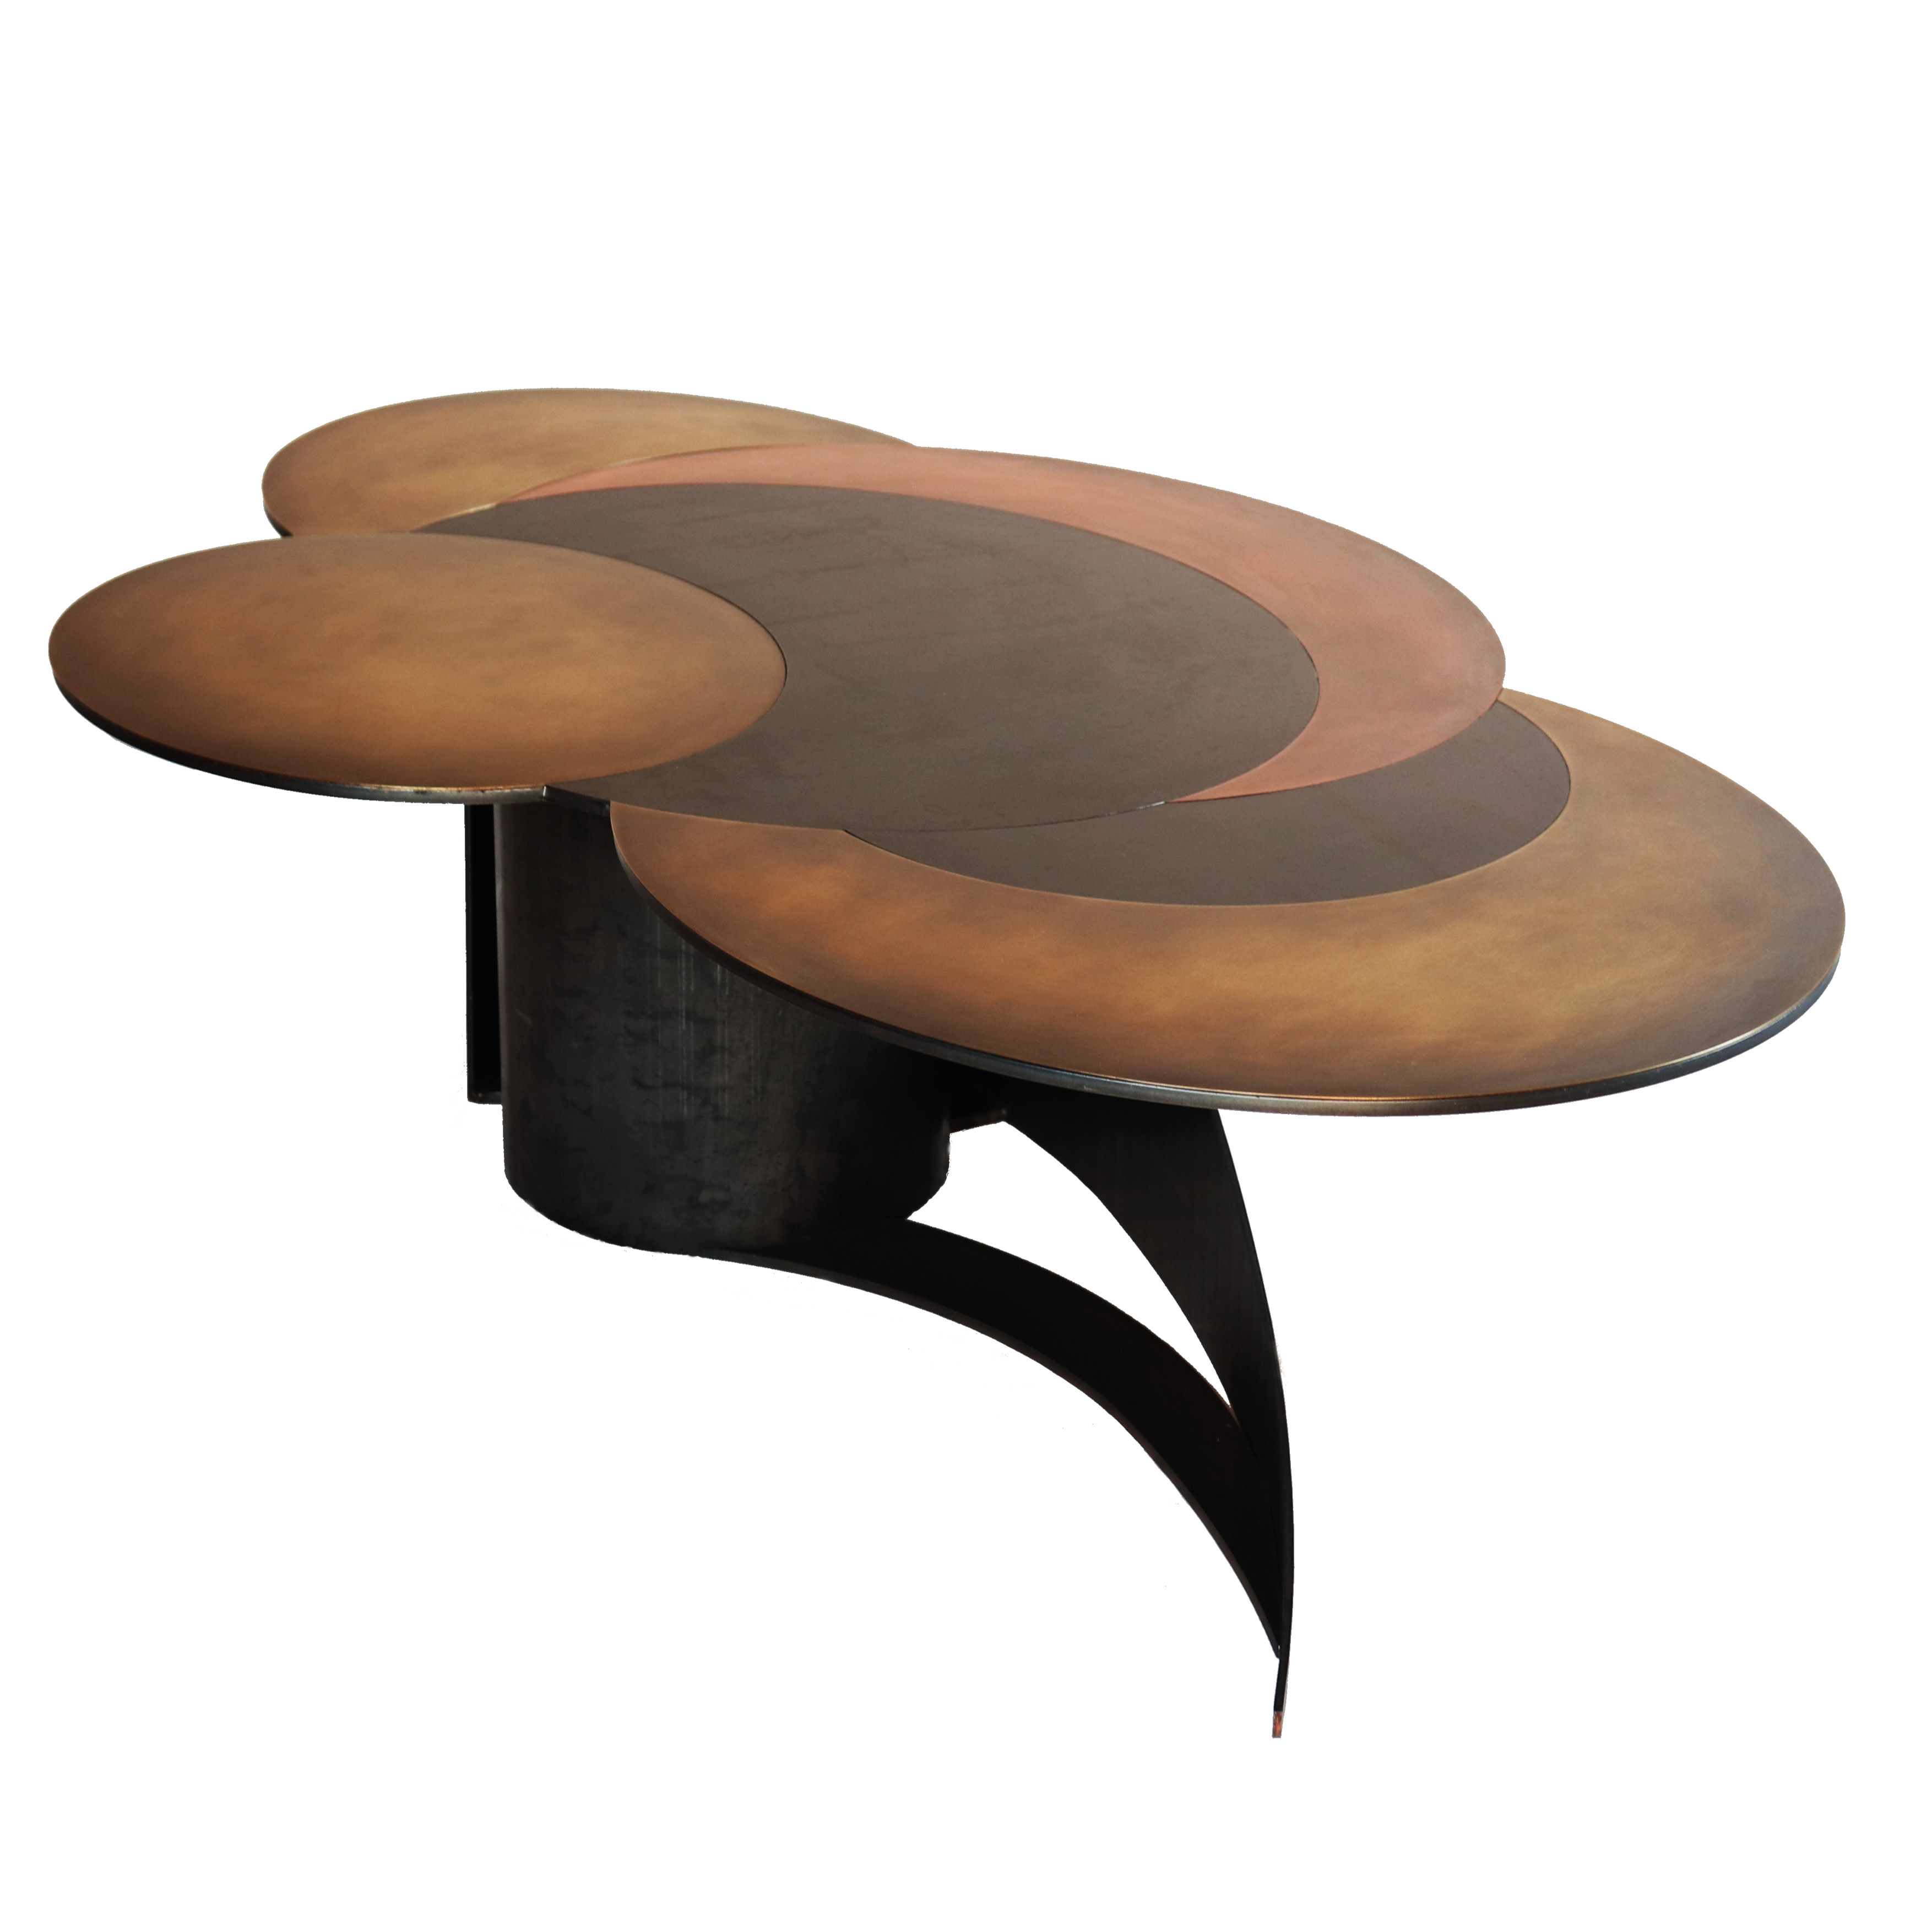 Limited Edition - Coffeetable CU'MULUS